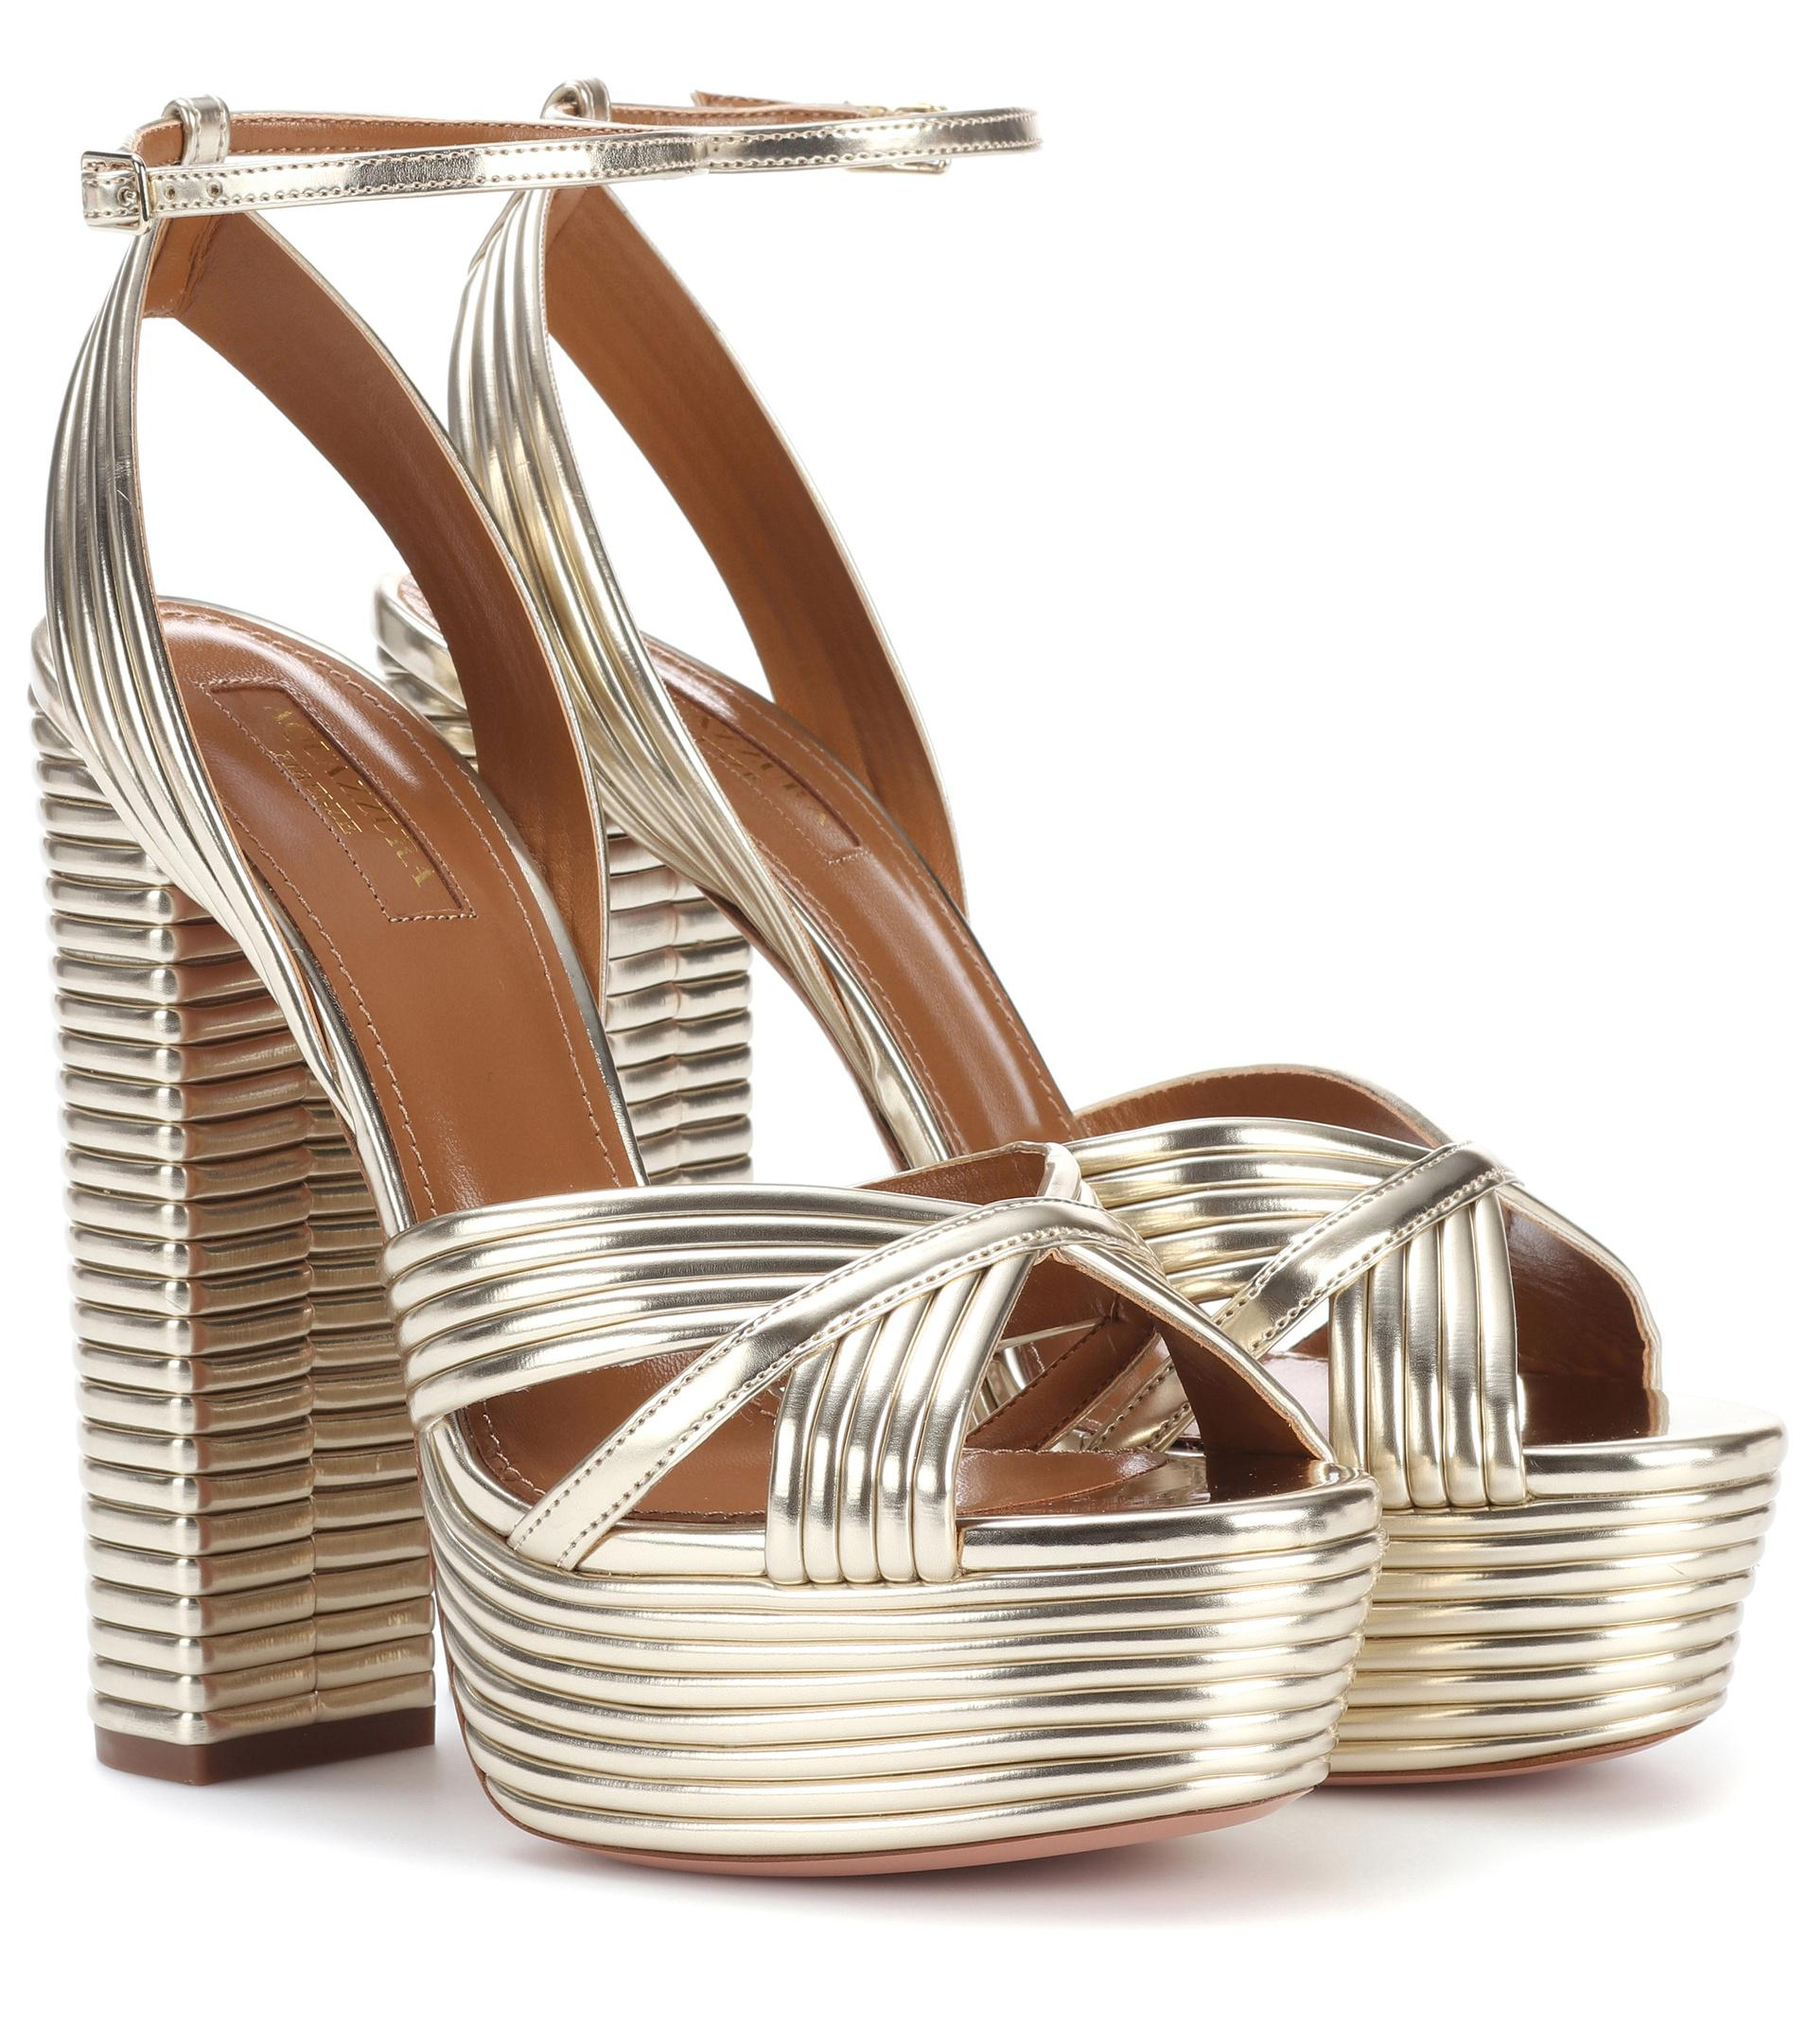 92a5e6dc562 Aquazzura Sundance Plateau 140 Leather Sandals in Metallic - Lyst